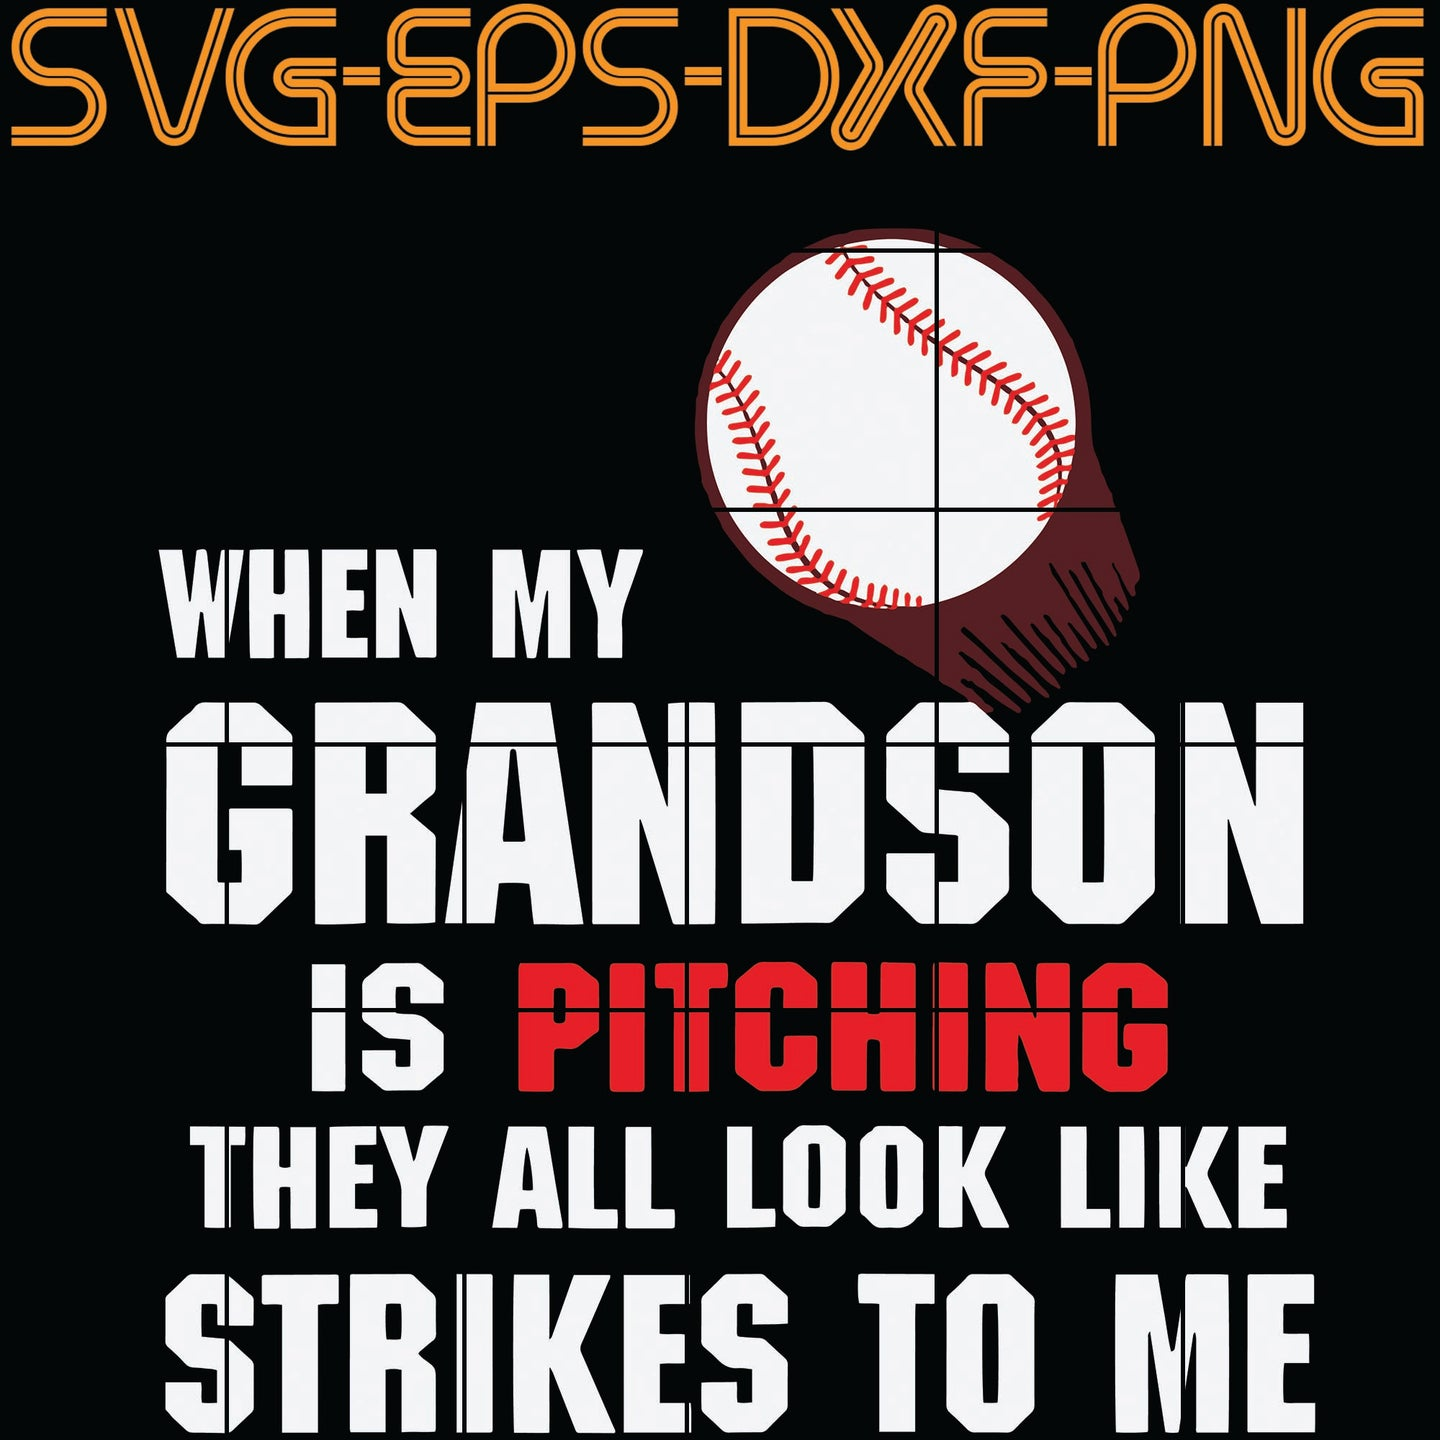 When My Grandson Is Pitching They All Look Like Strikes To Me, Quotes, PNG, EPS, DXF, Digital Download